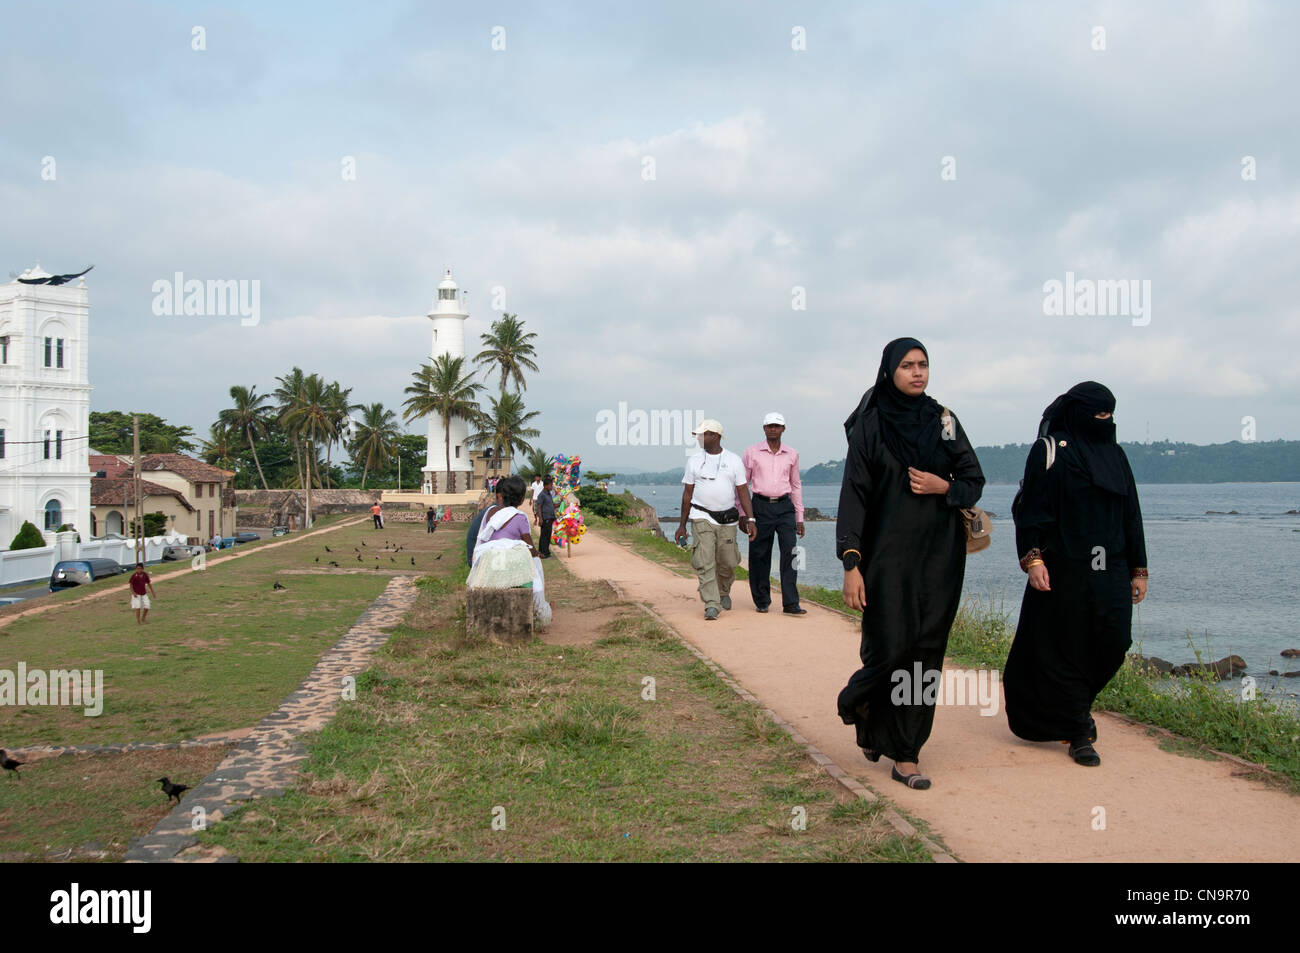 Families take in the early evening air on the ramparts of the Galle Fort Sri Lanka - Stock Image